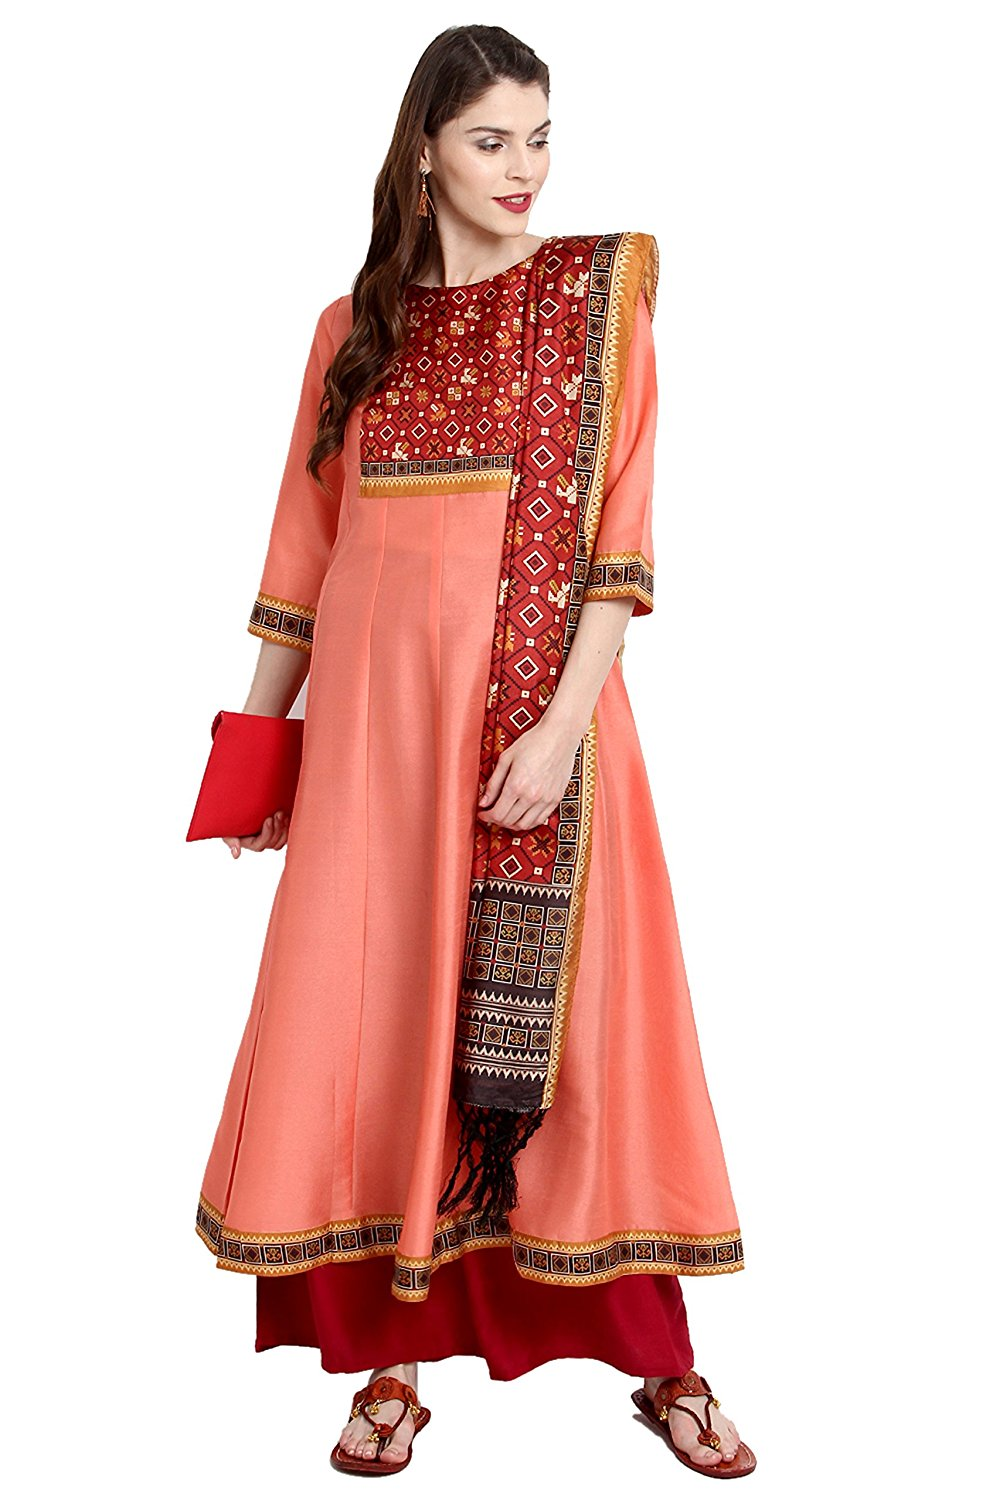 Janasya Women's Poly Silk Anarkali Kurta with Dupatta